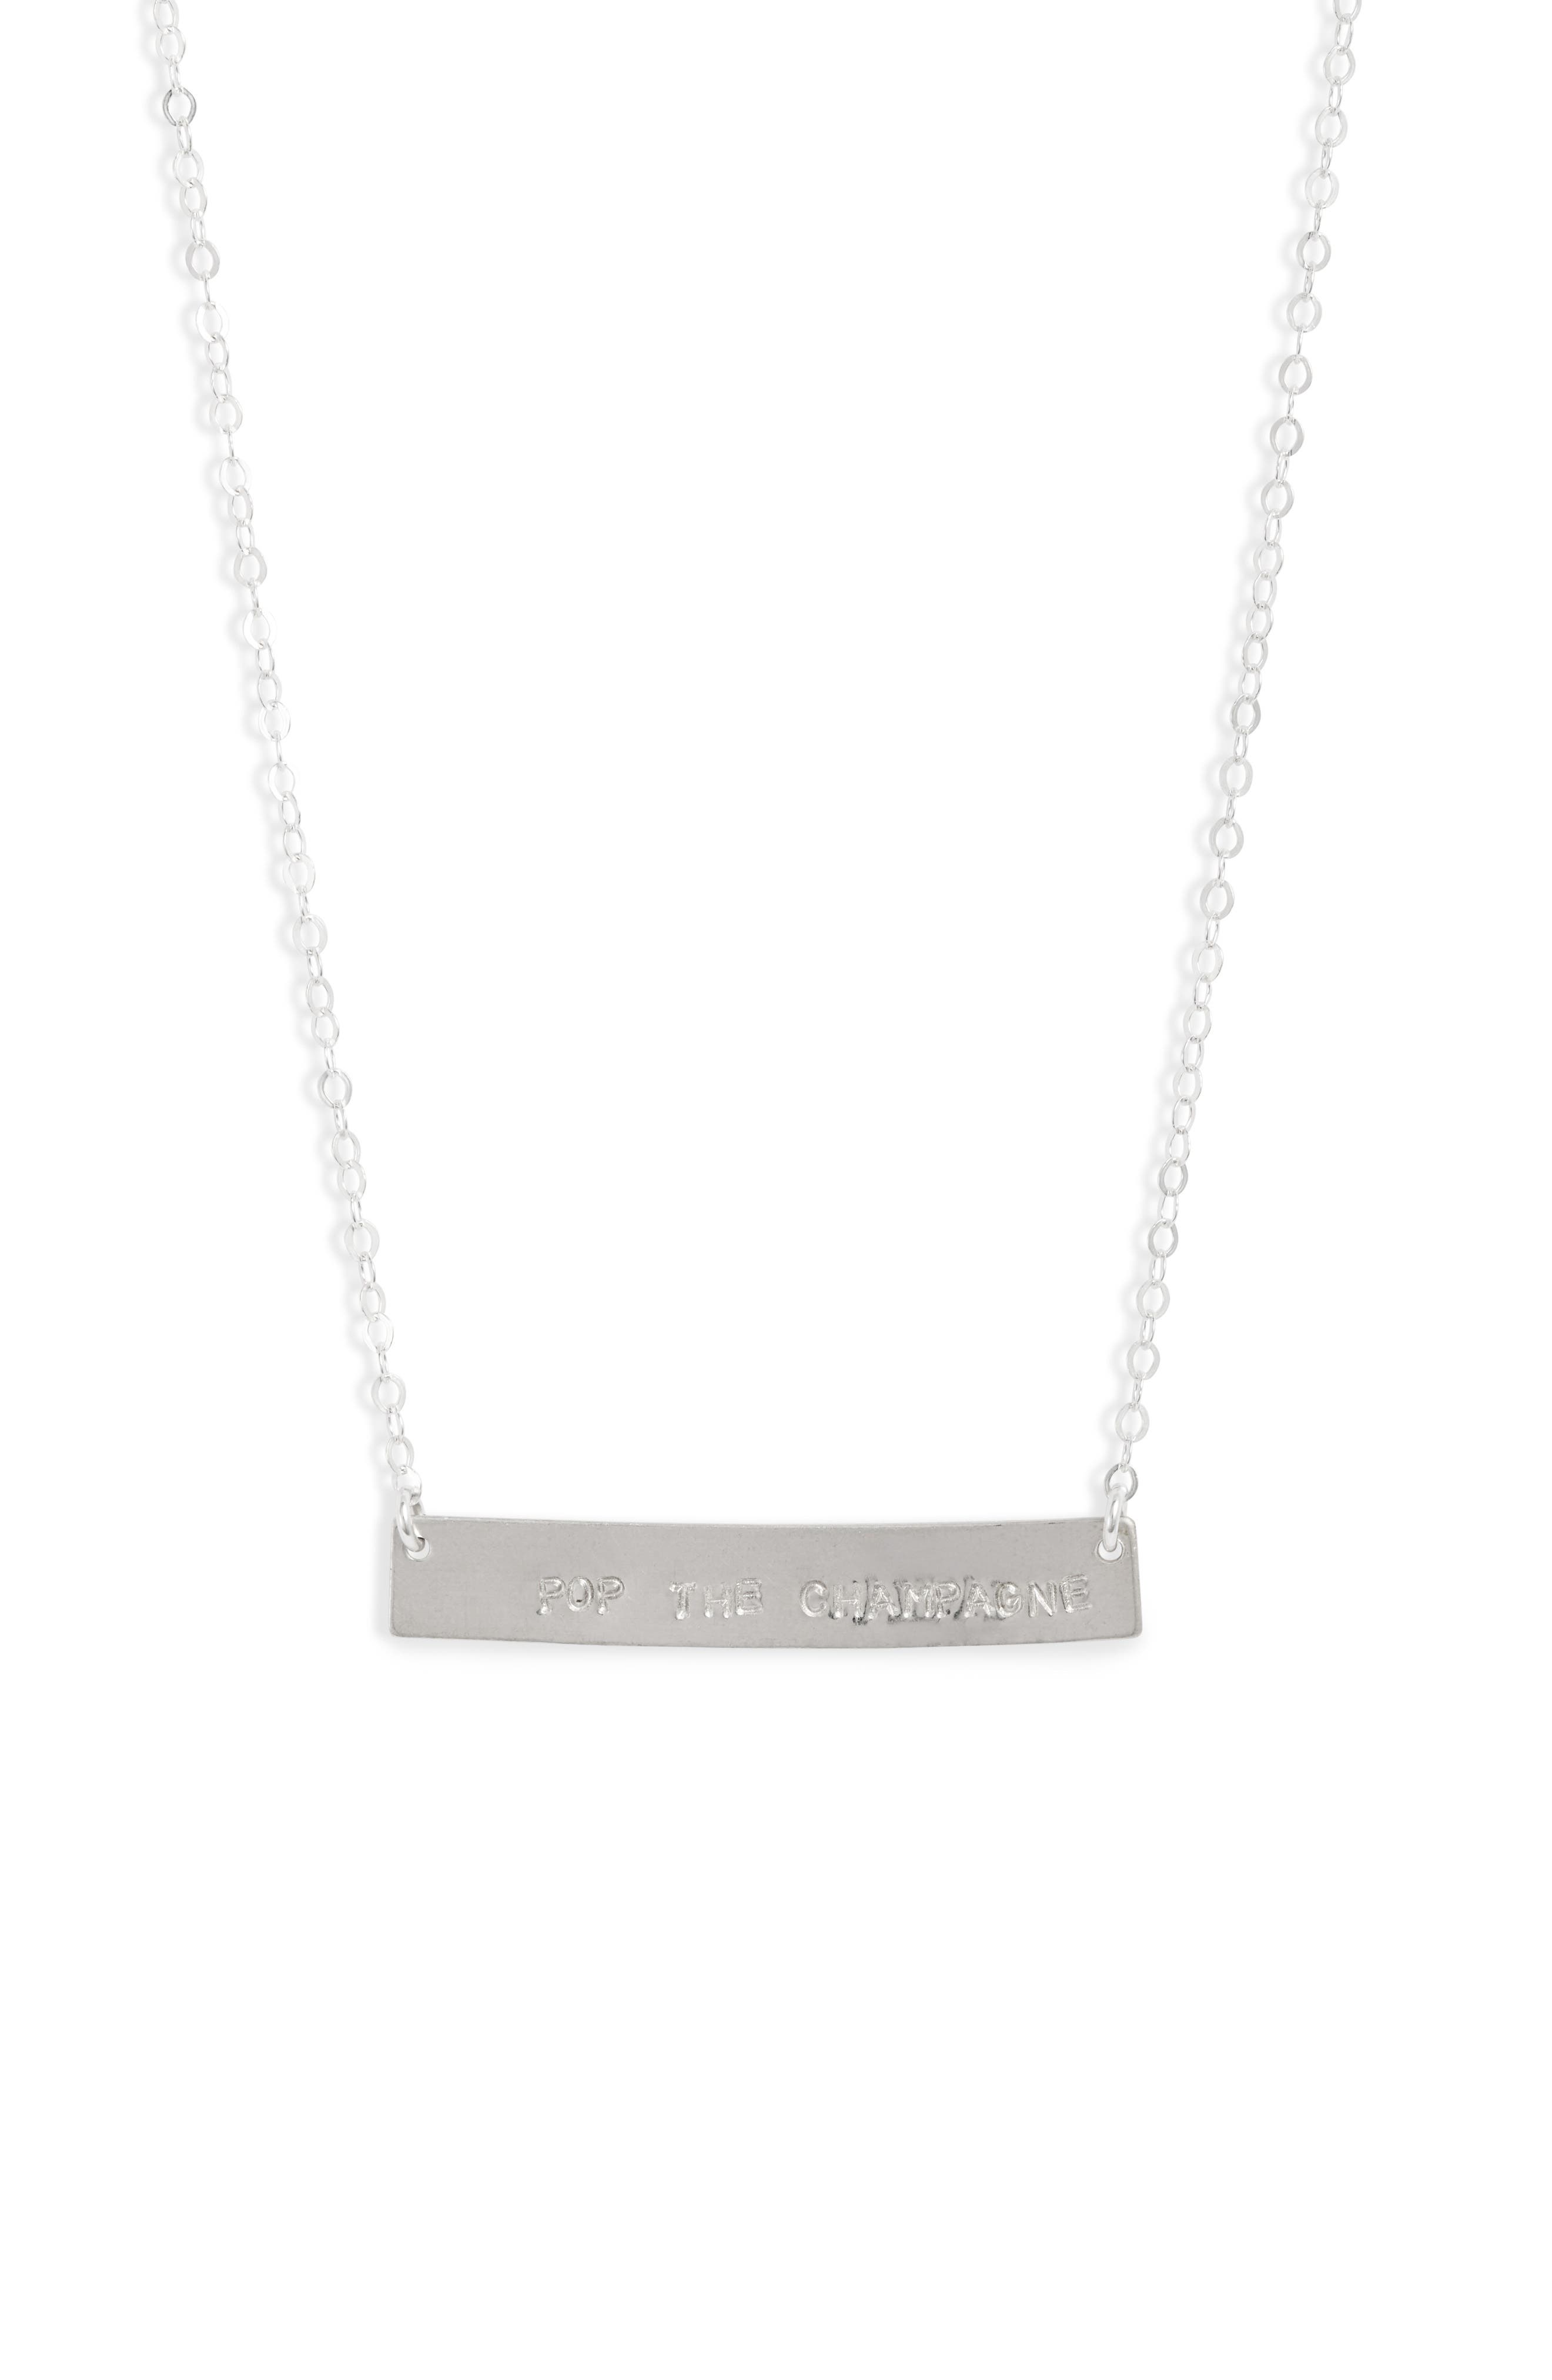 Celebrate a promotion, engagement or just life itself with this bar pendant necklace that\\\'s hand stamped with the phrase, \\\'pop the champagne.\\\' Style Name: Set & Stones Cassie Pop The Champagne Bar Necklace. Style Number: 5966506. Available in stores.